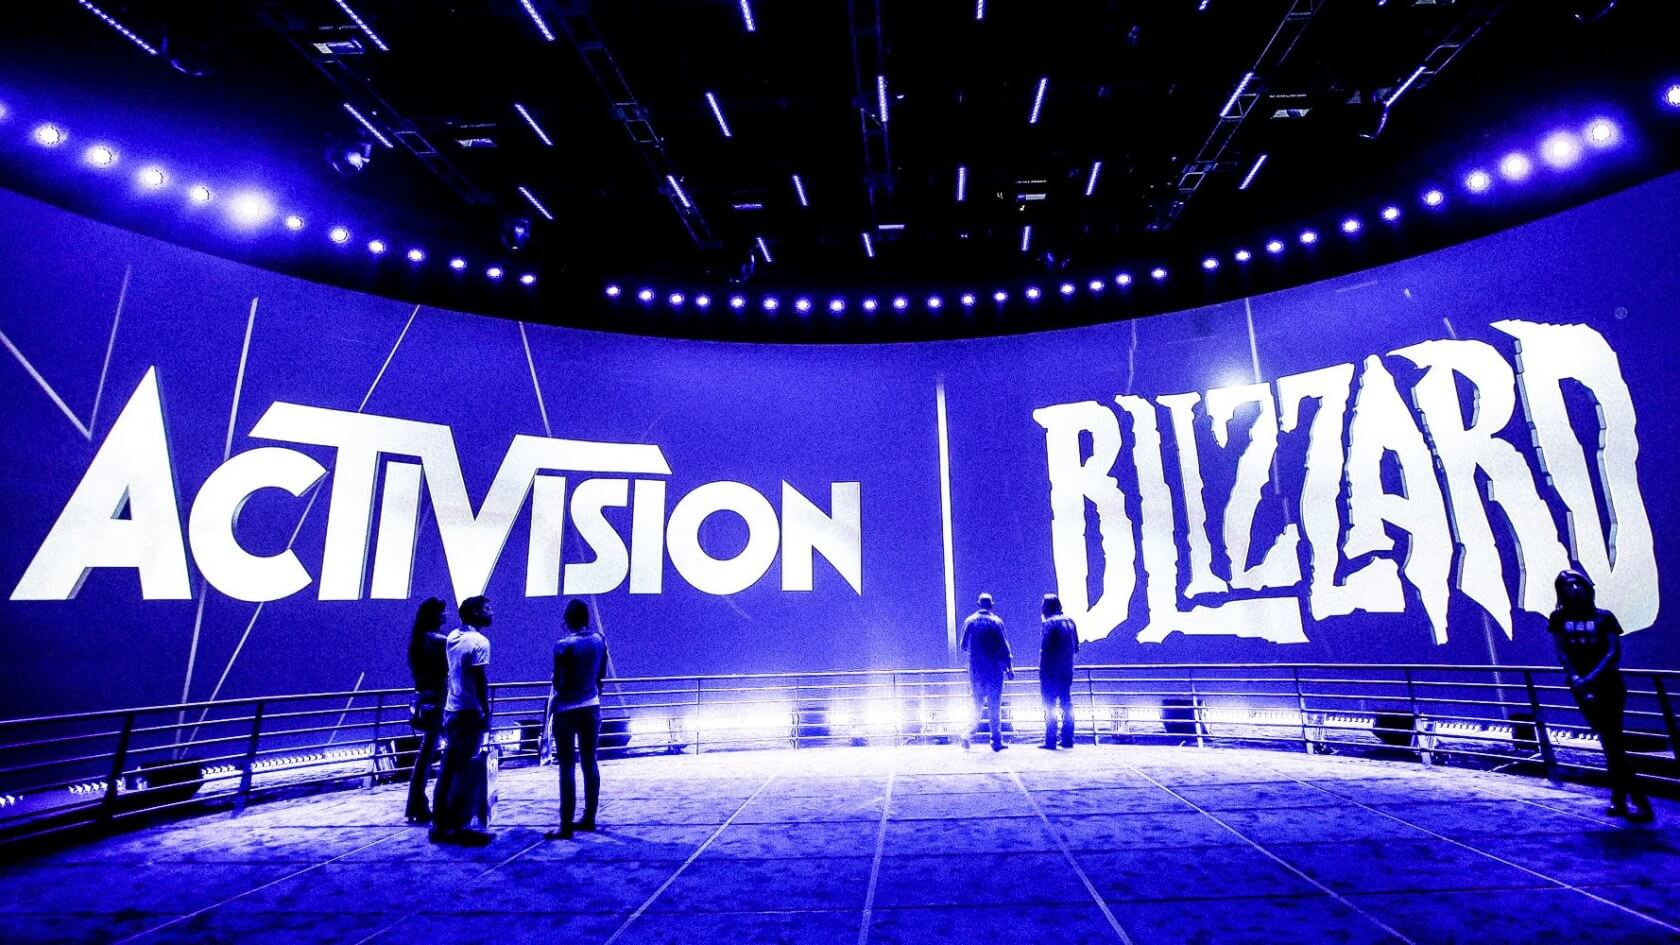 Activision Blizzard is laying off 775 people, or about 8% of its workforce